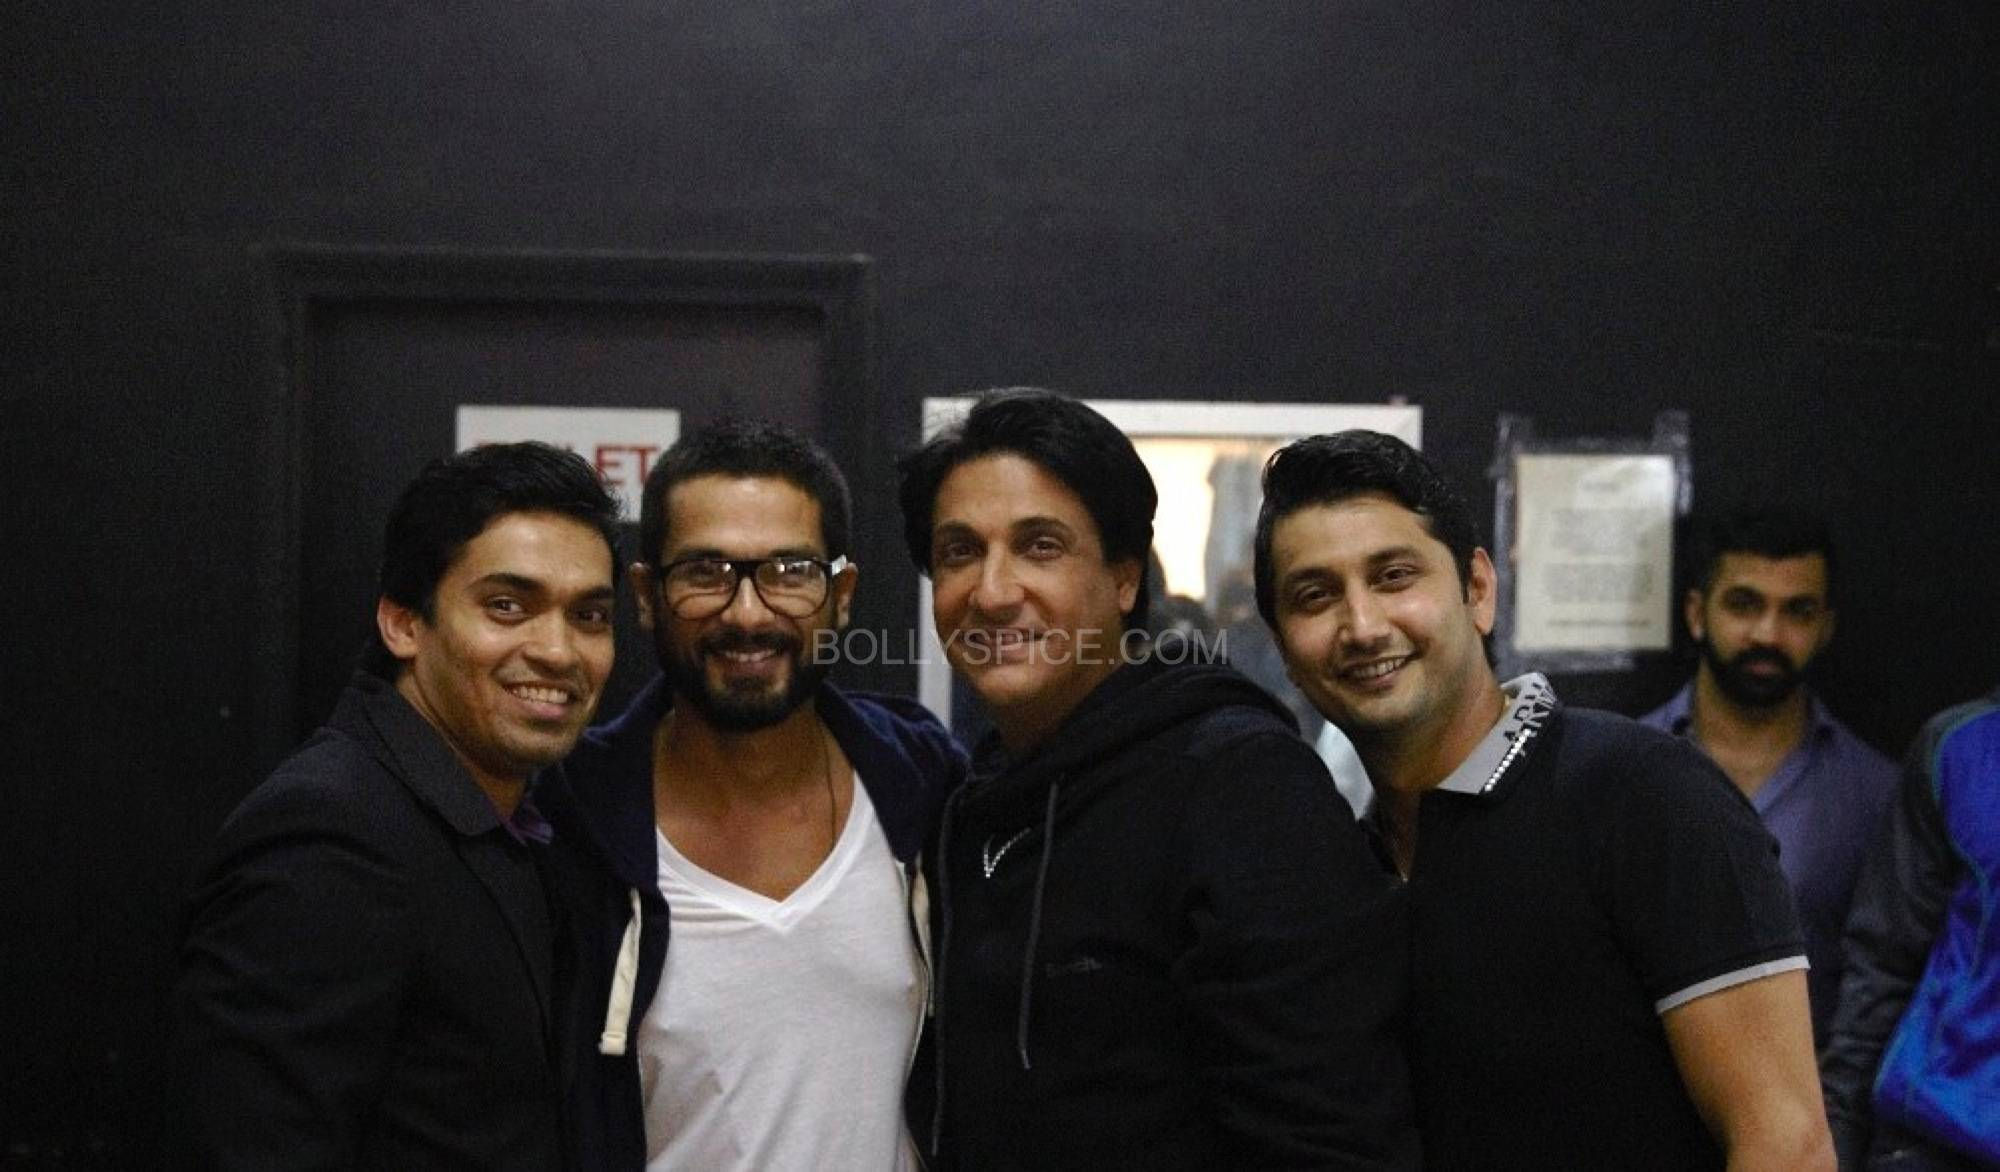 shahidshiamak2 Shahid and Shahids Brother Ishaan Named Shiamaks Most Promising Students